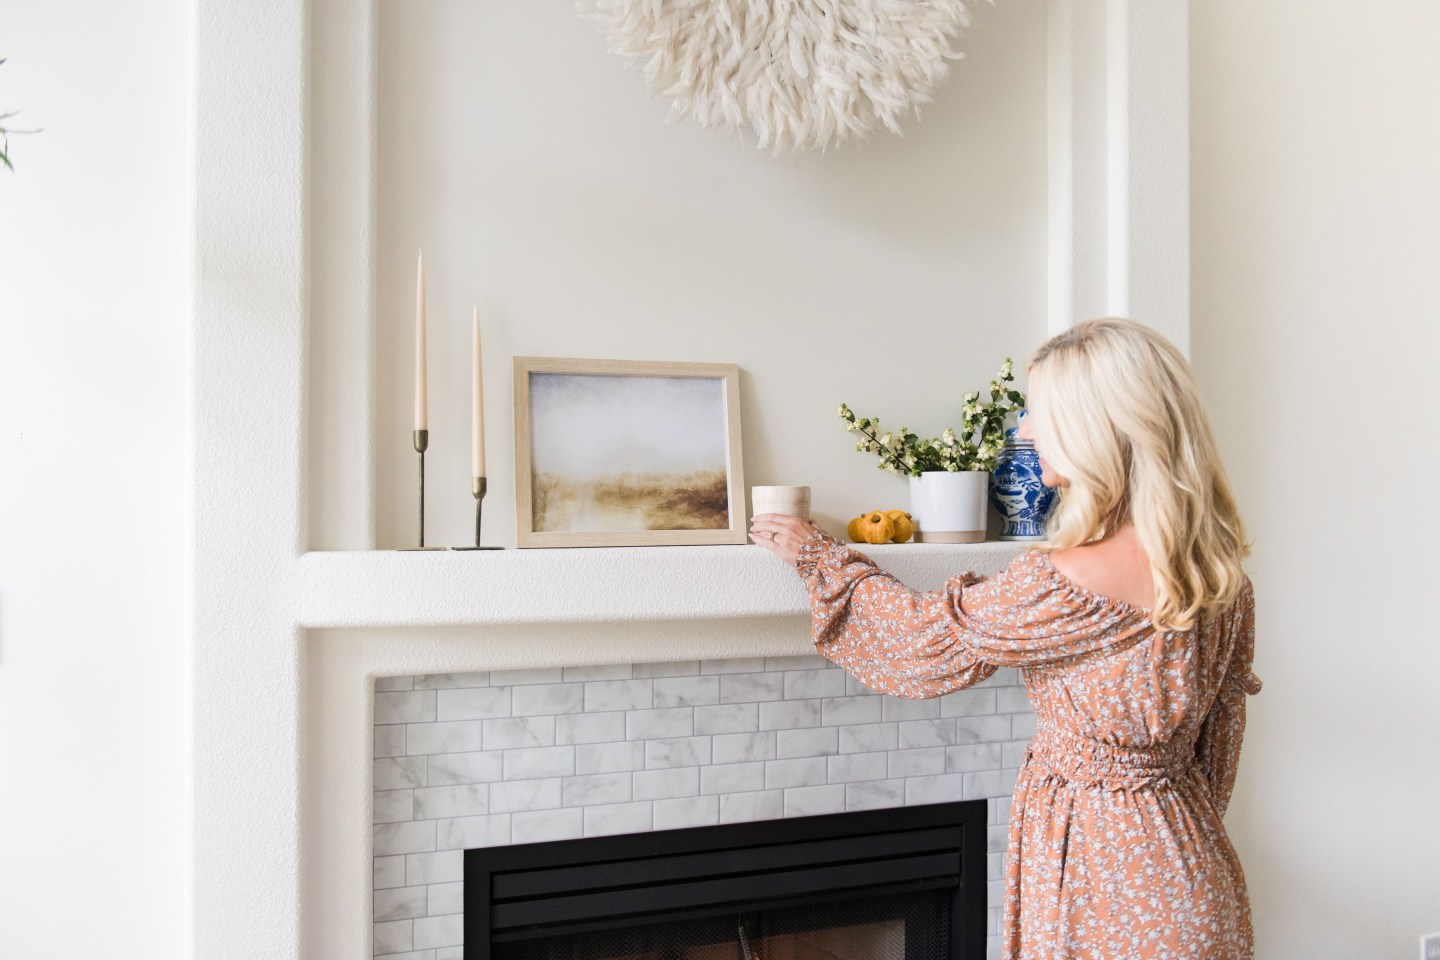 My Fall Mantel: Tips for creating a cozy and inviting space